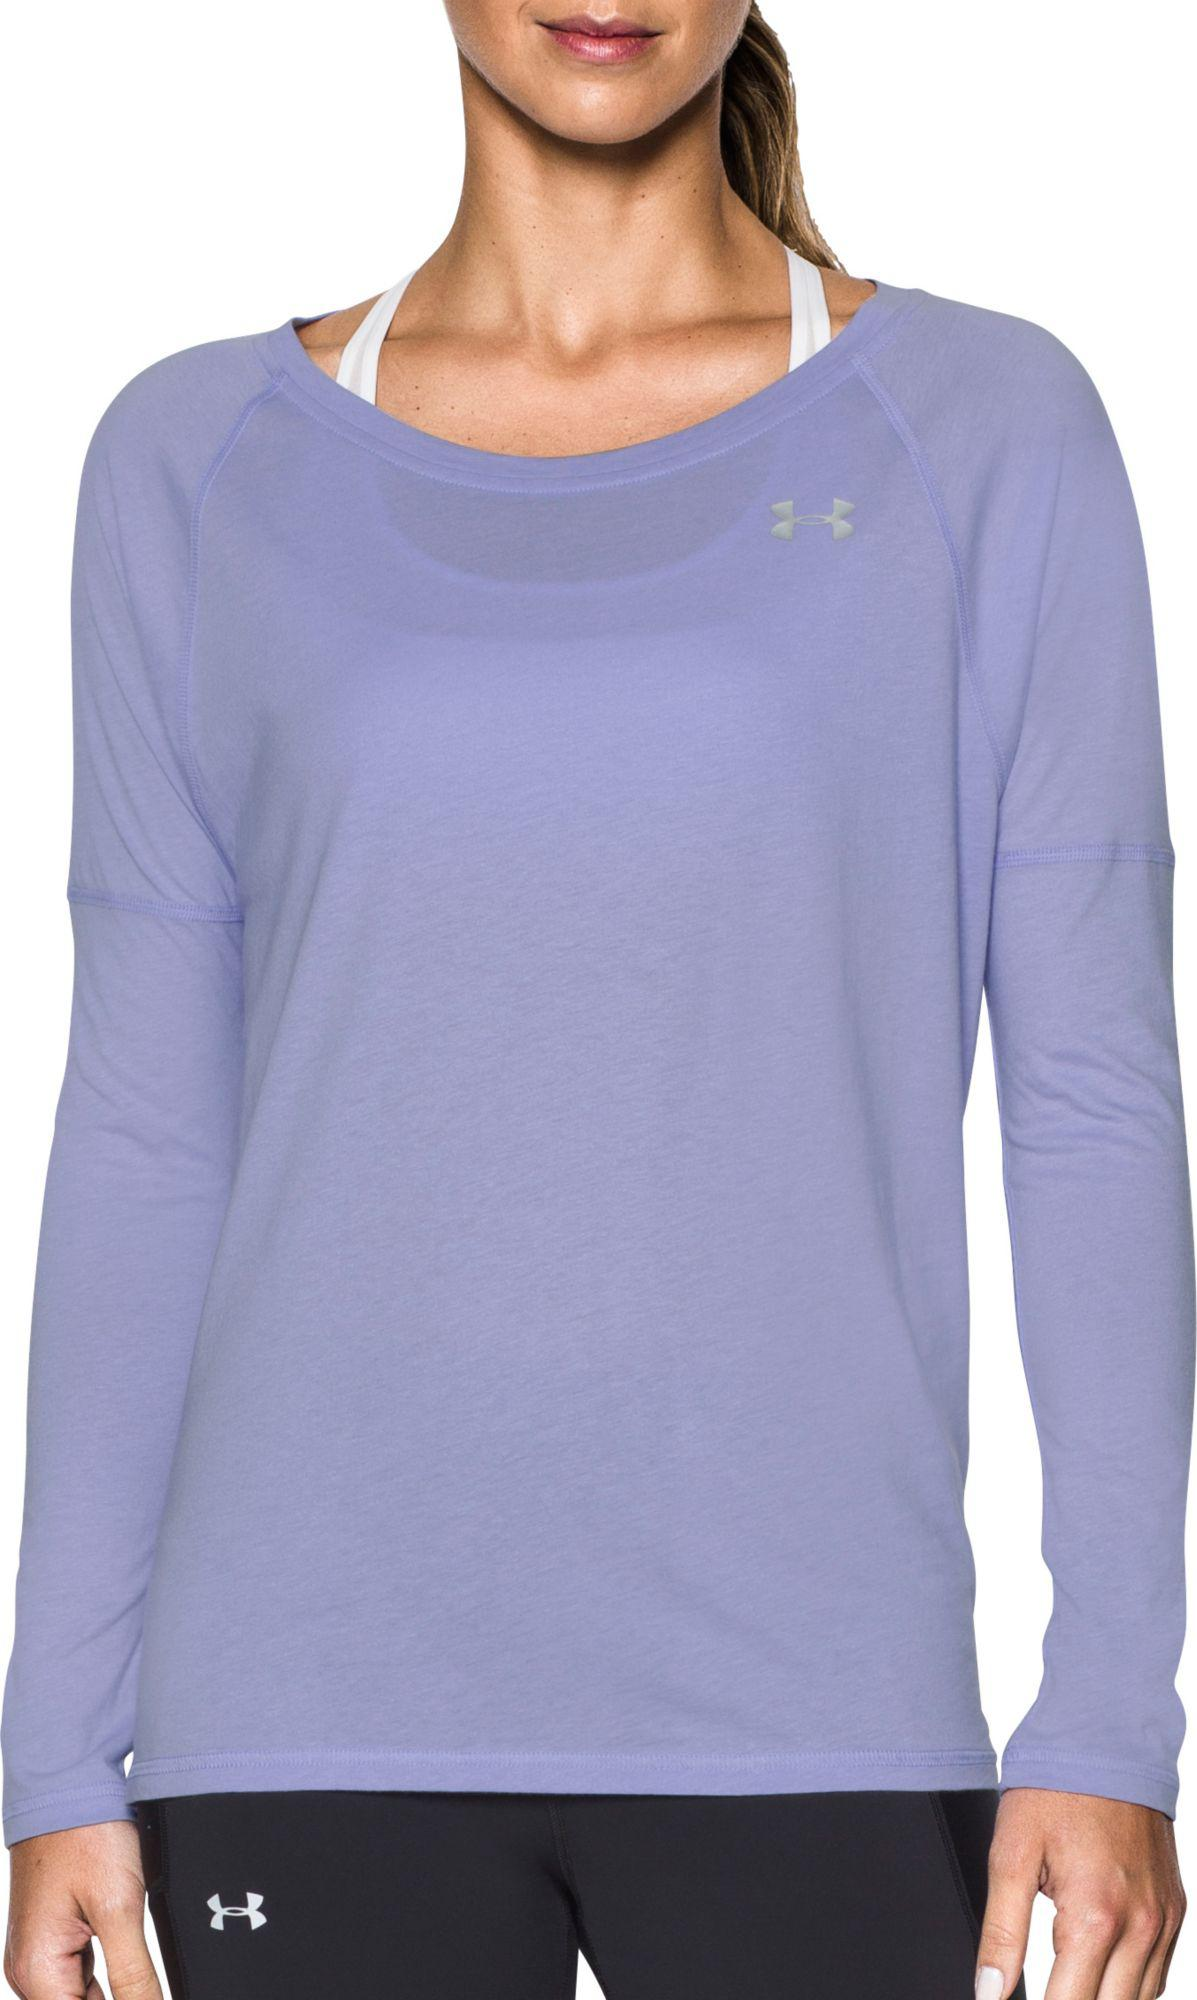 tanger outlets under armour active wear long sleeve tee